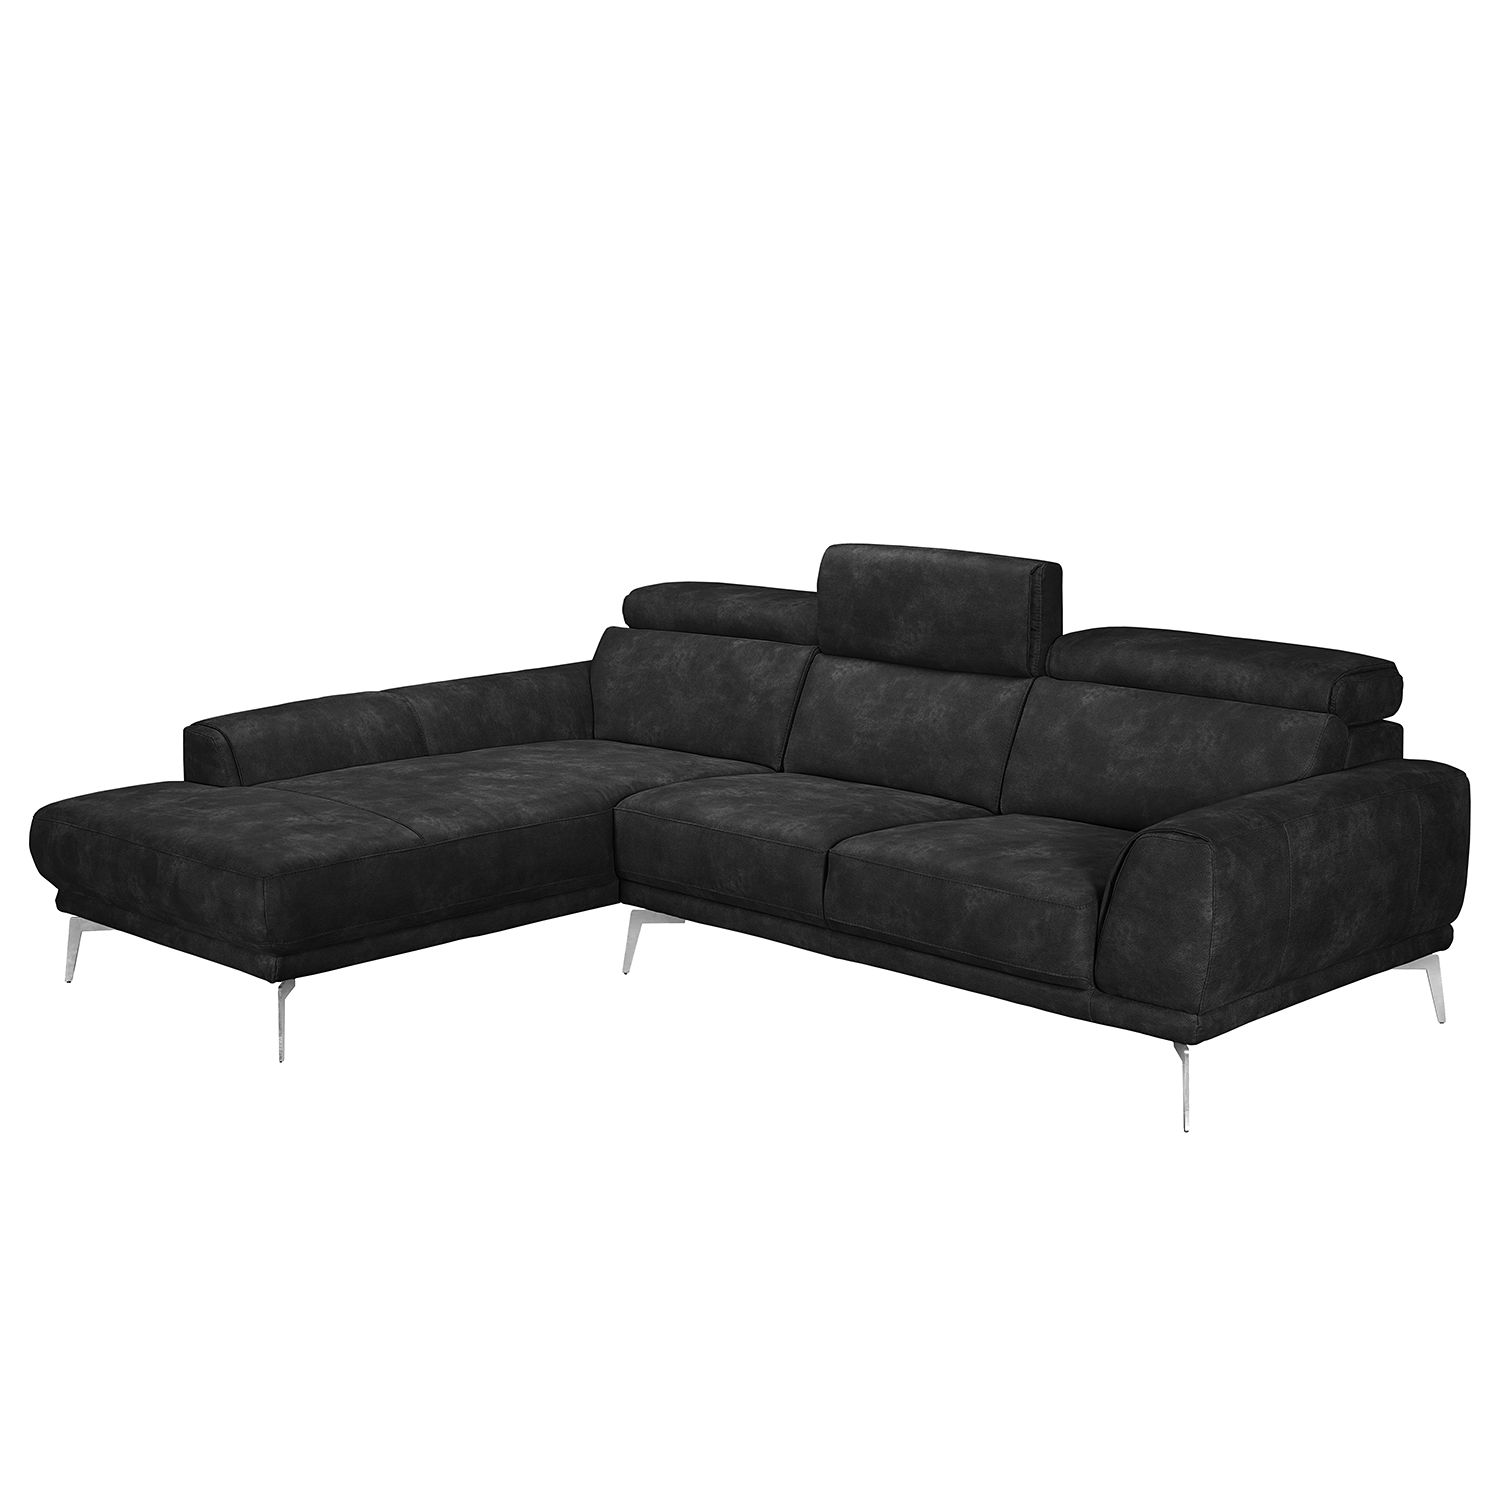 ecksofa schwarz inspirierendes design f r. Black Bedroom Furniture Sets. Home Design Ideas